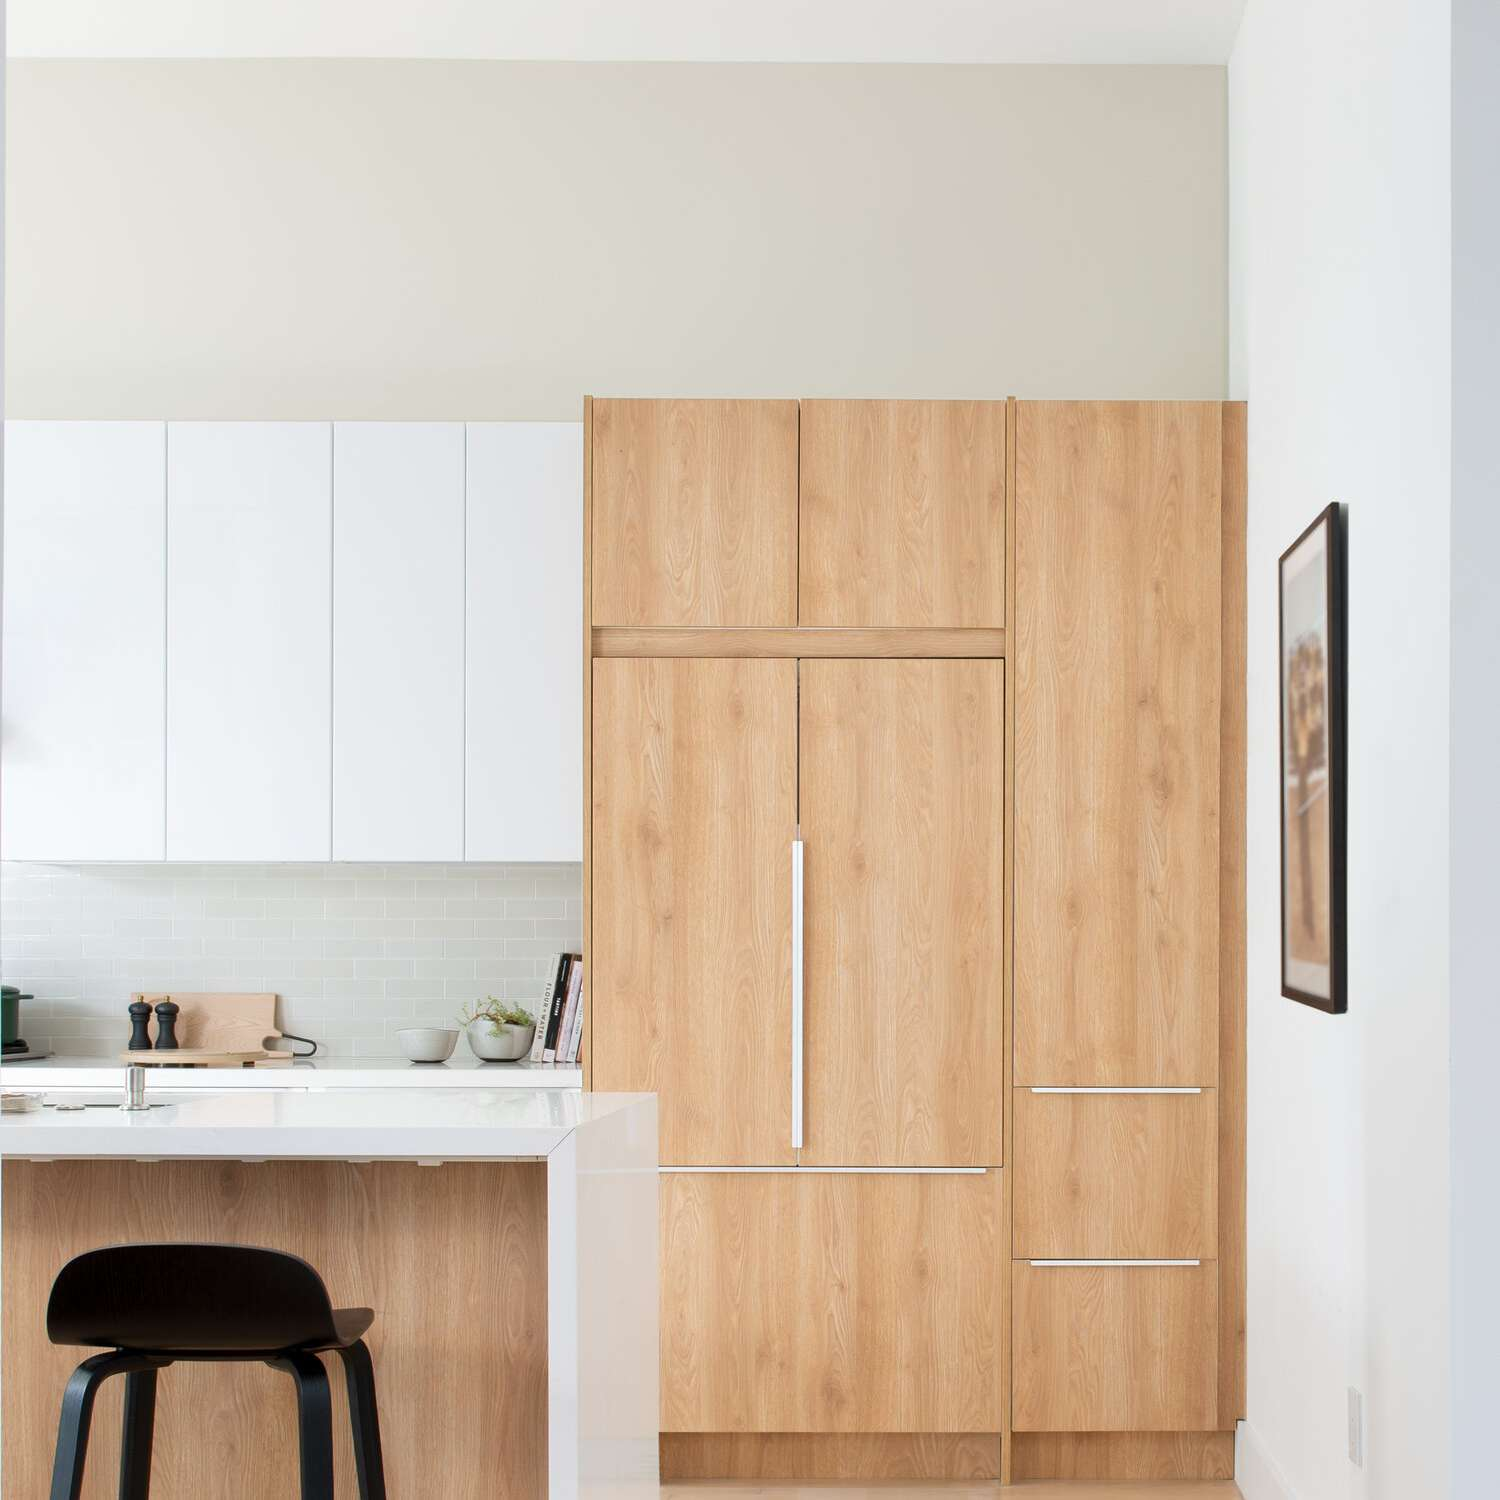 A wood-lined kitchen with IKEA cabinets